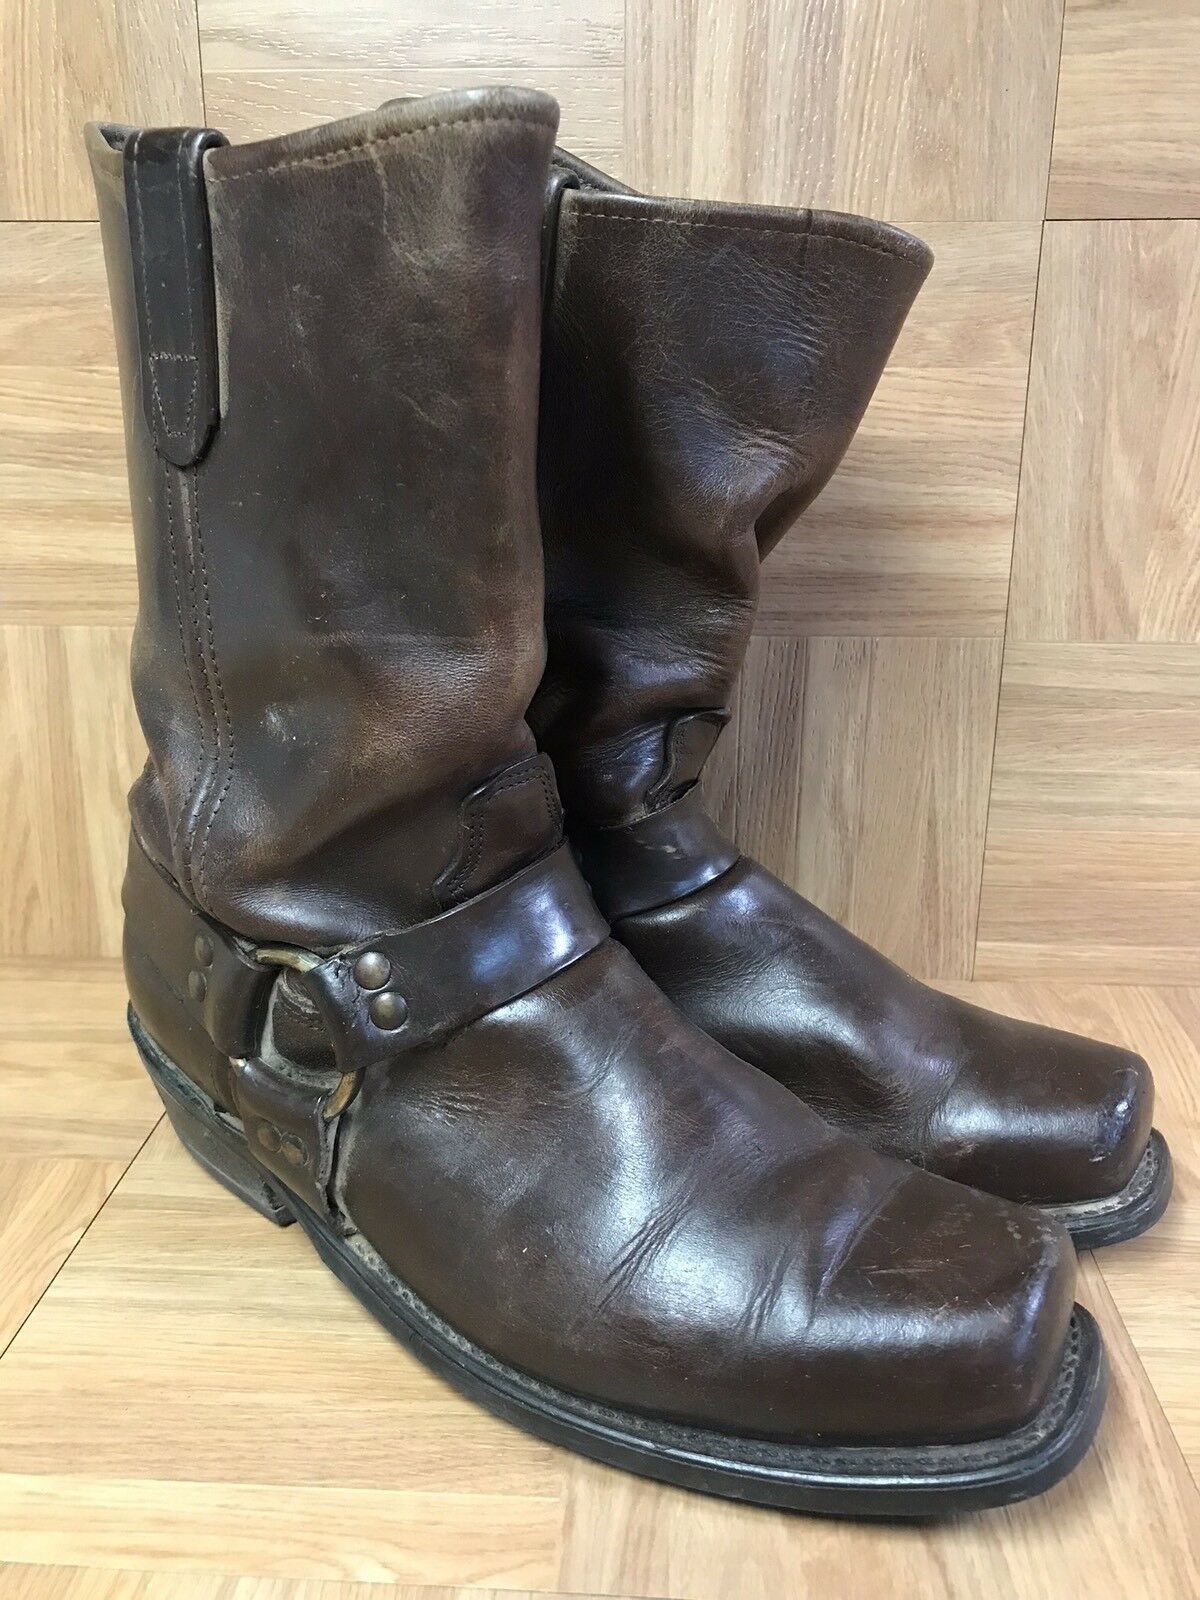 Vintage Biltrite Cowboy Biker Rough Tall Brown Leather Boots Sz 11 Men's Boots